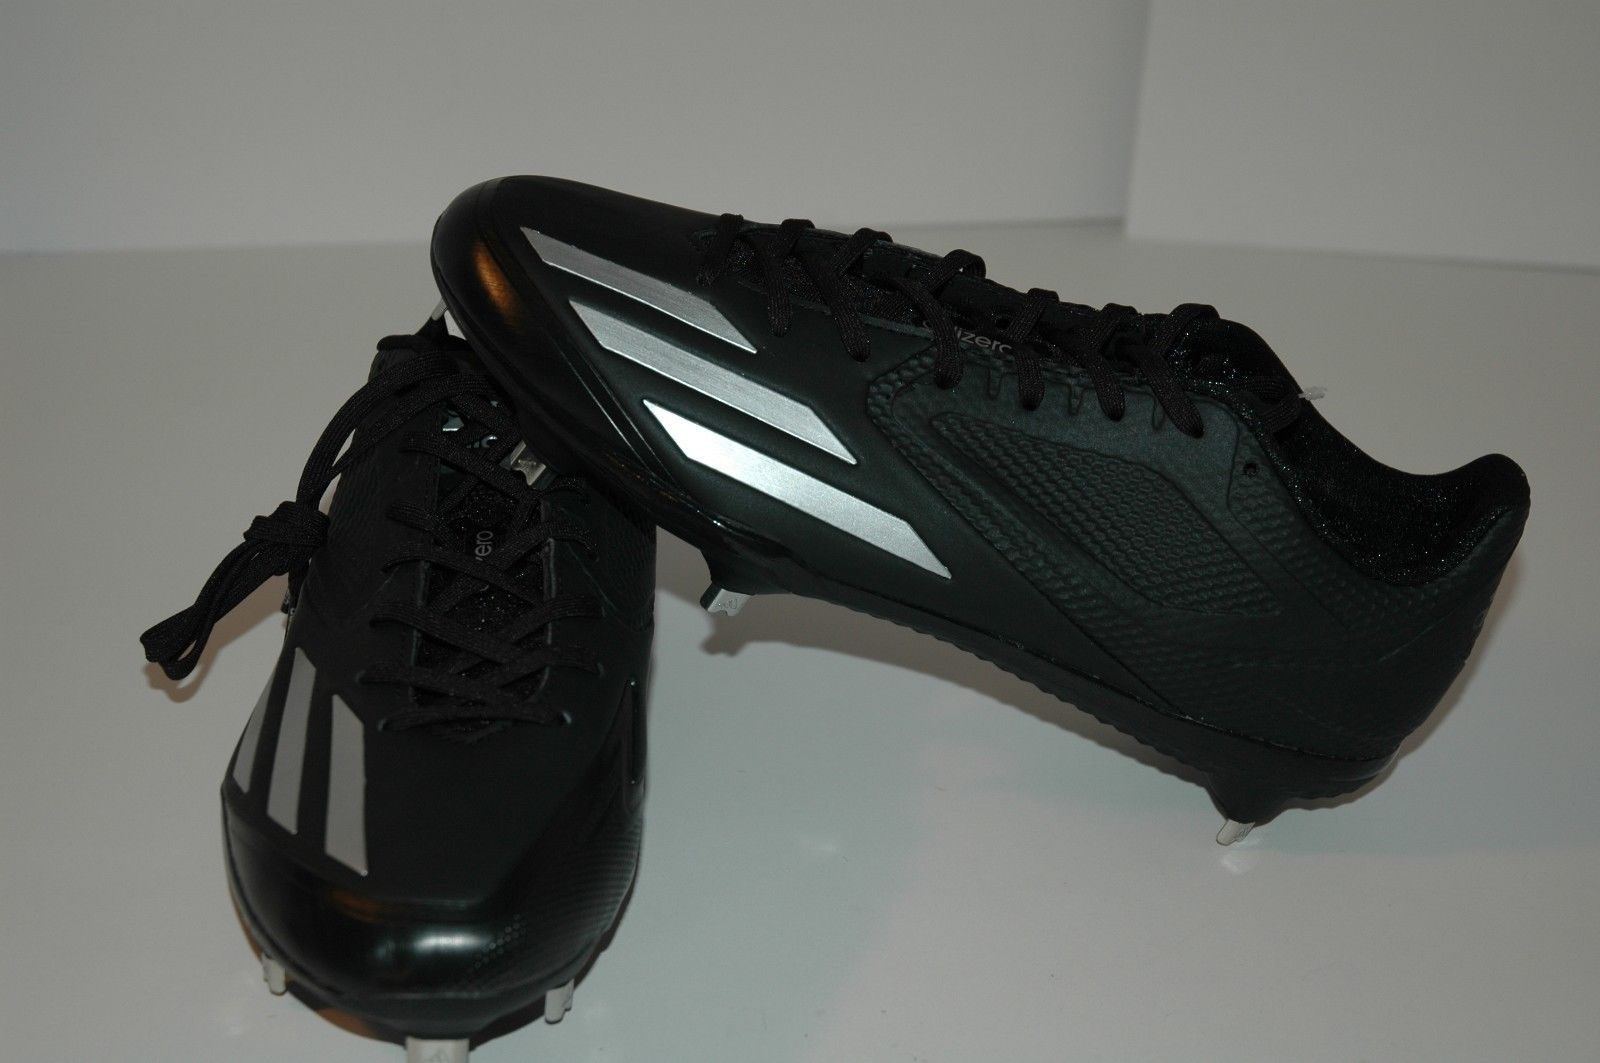 sale retailer 95645 30ea7 Adidas Adizero Afterburner 3 Metal Baseball Cleats Q16563 FREE PRIORITY